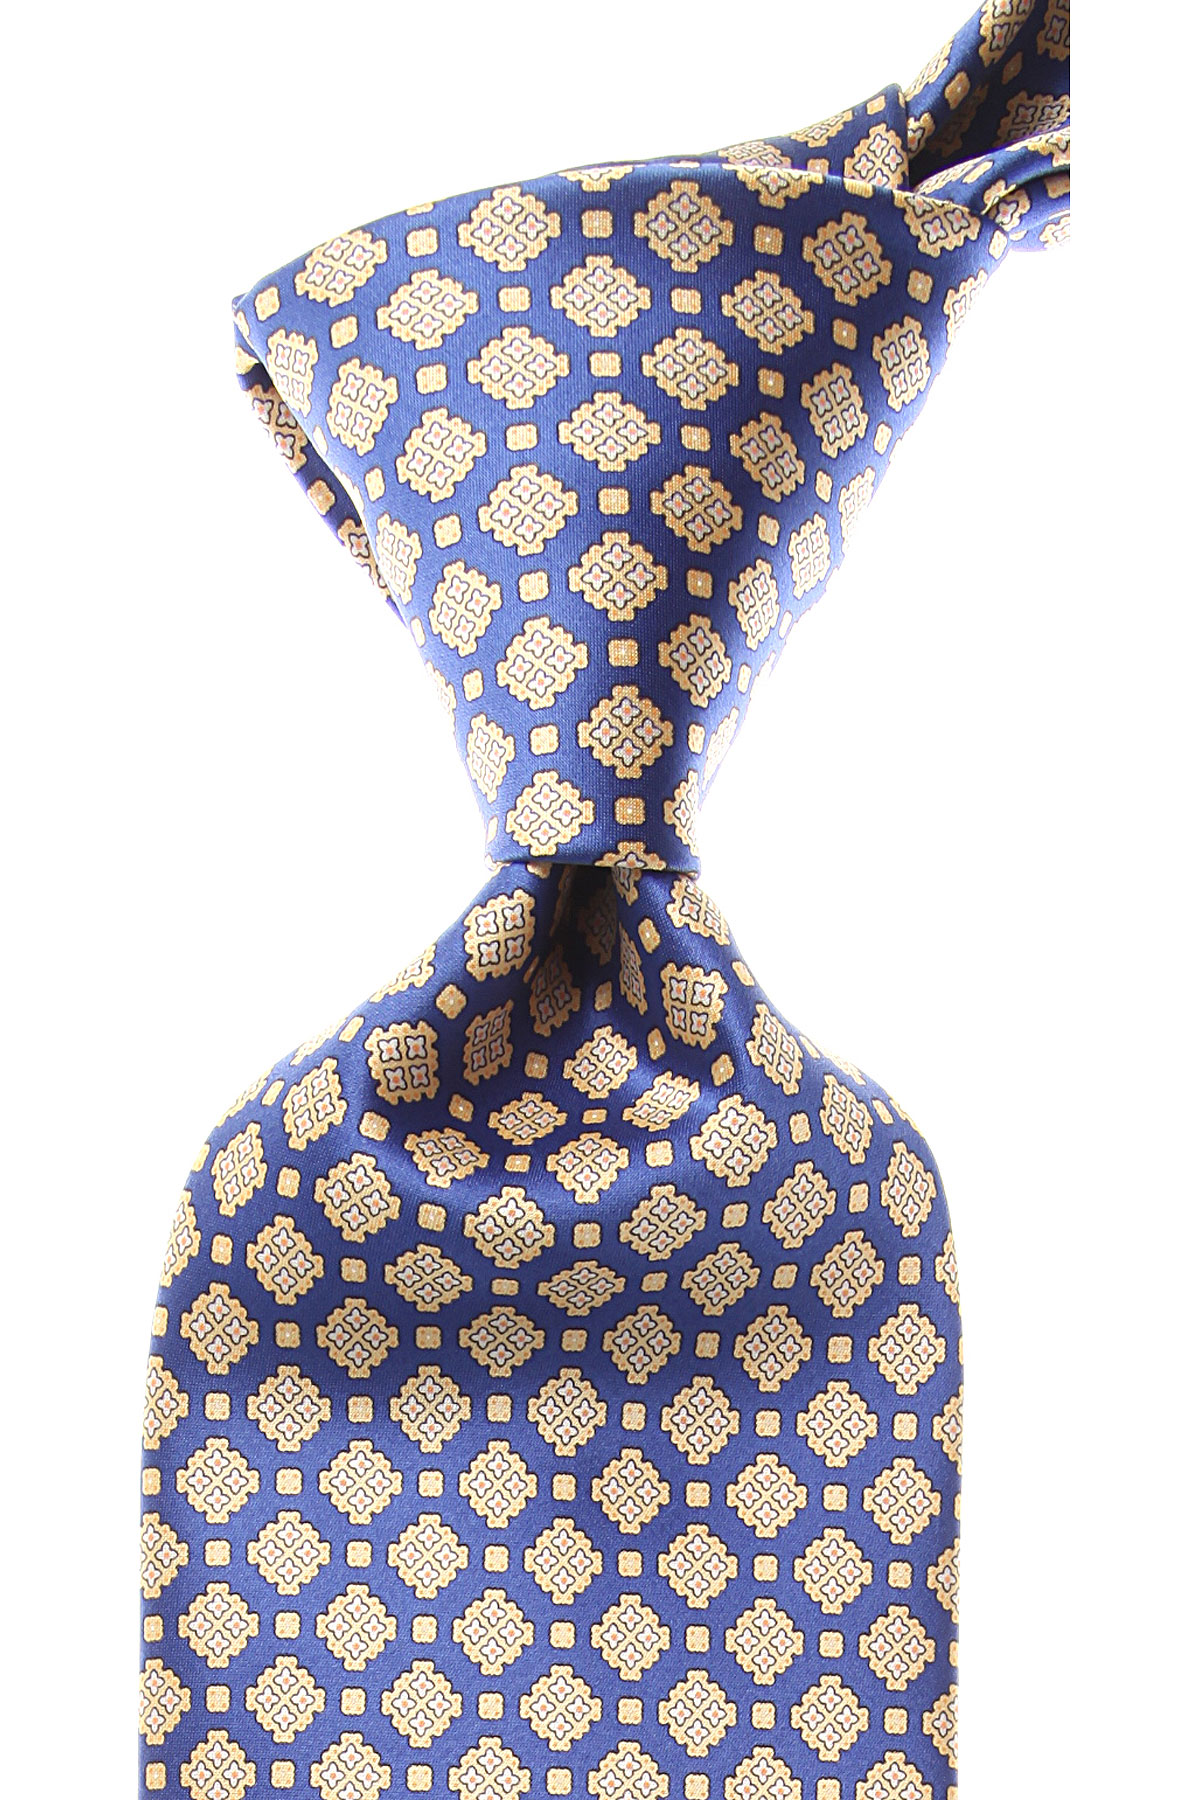 Image of Stefano Ricci Ties On Sale, Blue Royal, 2017